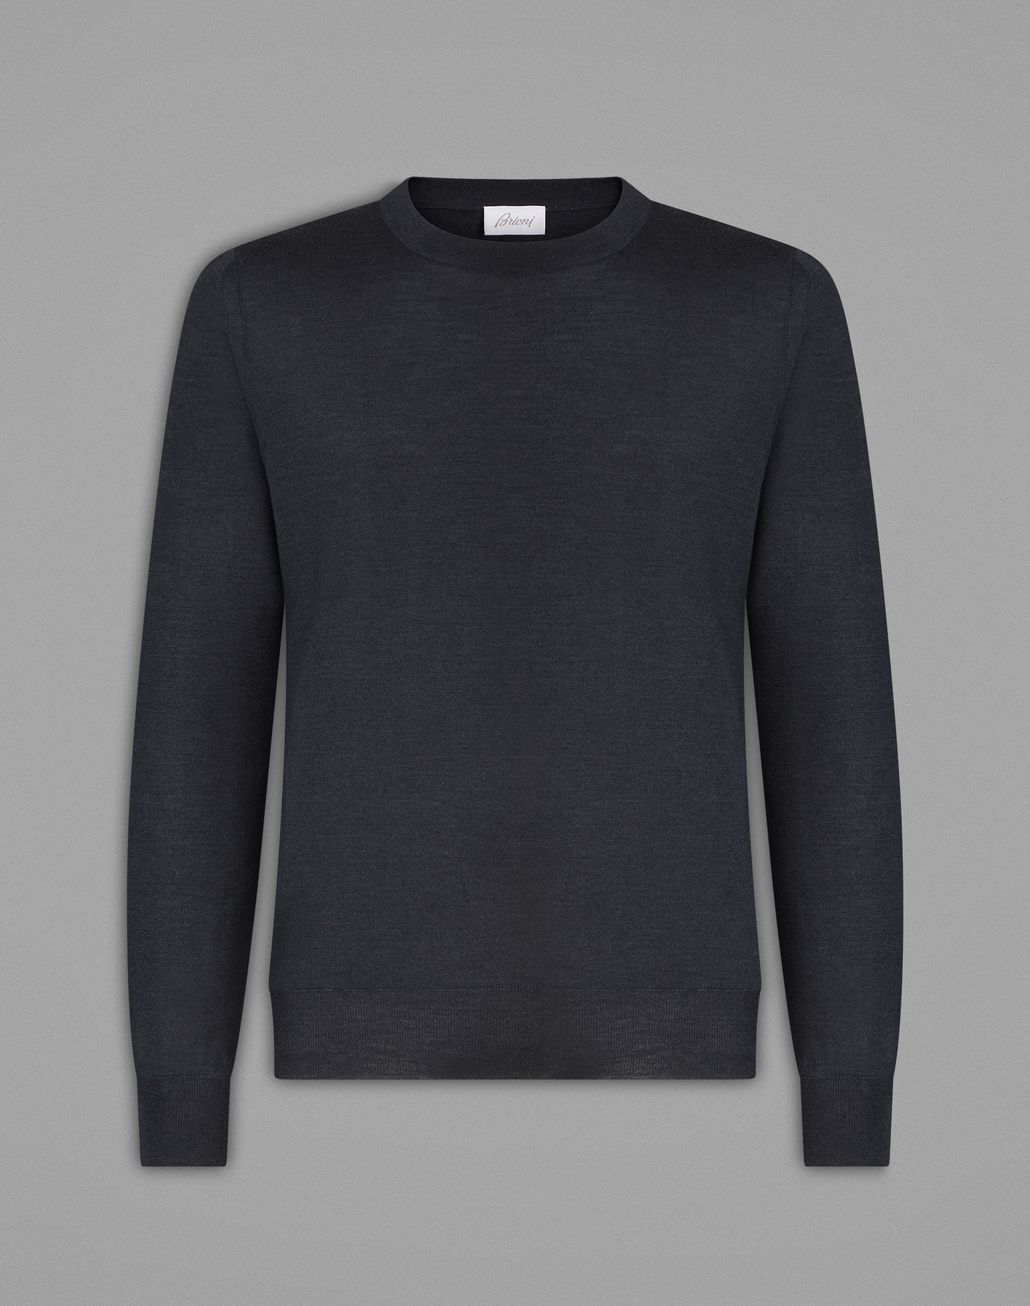 BRIONI 'Essential' Grey Crew-Neck Sweater Knitwear [*** pickupInStoreShippingNotGuaranteed_info ***] f